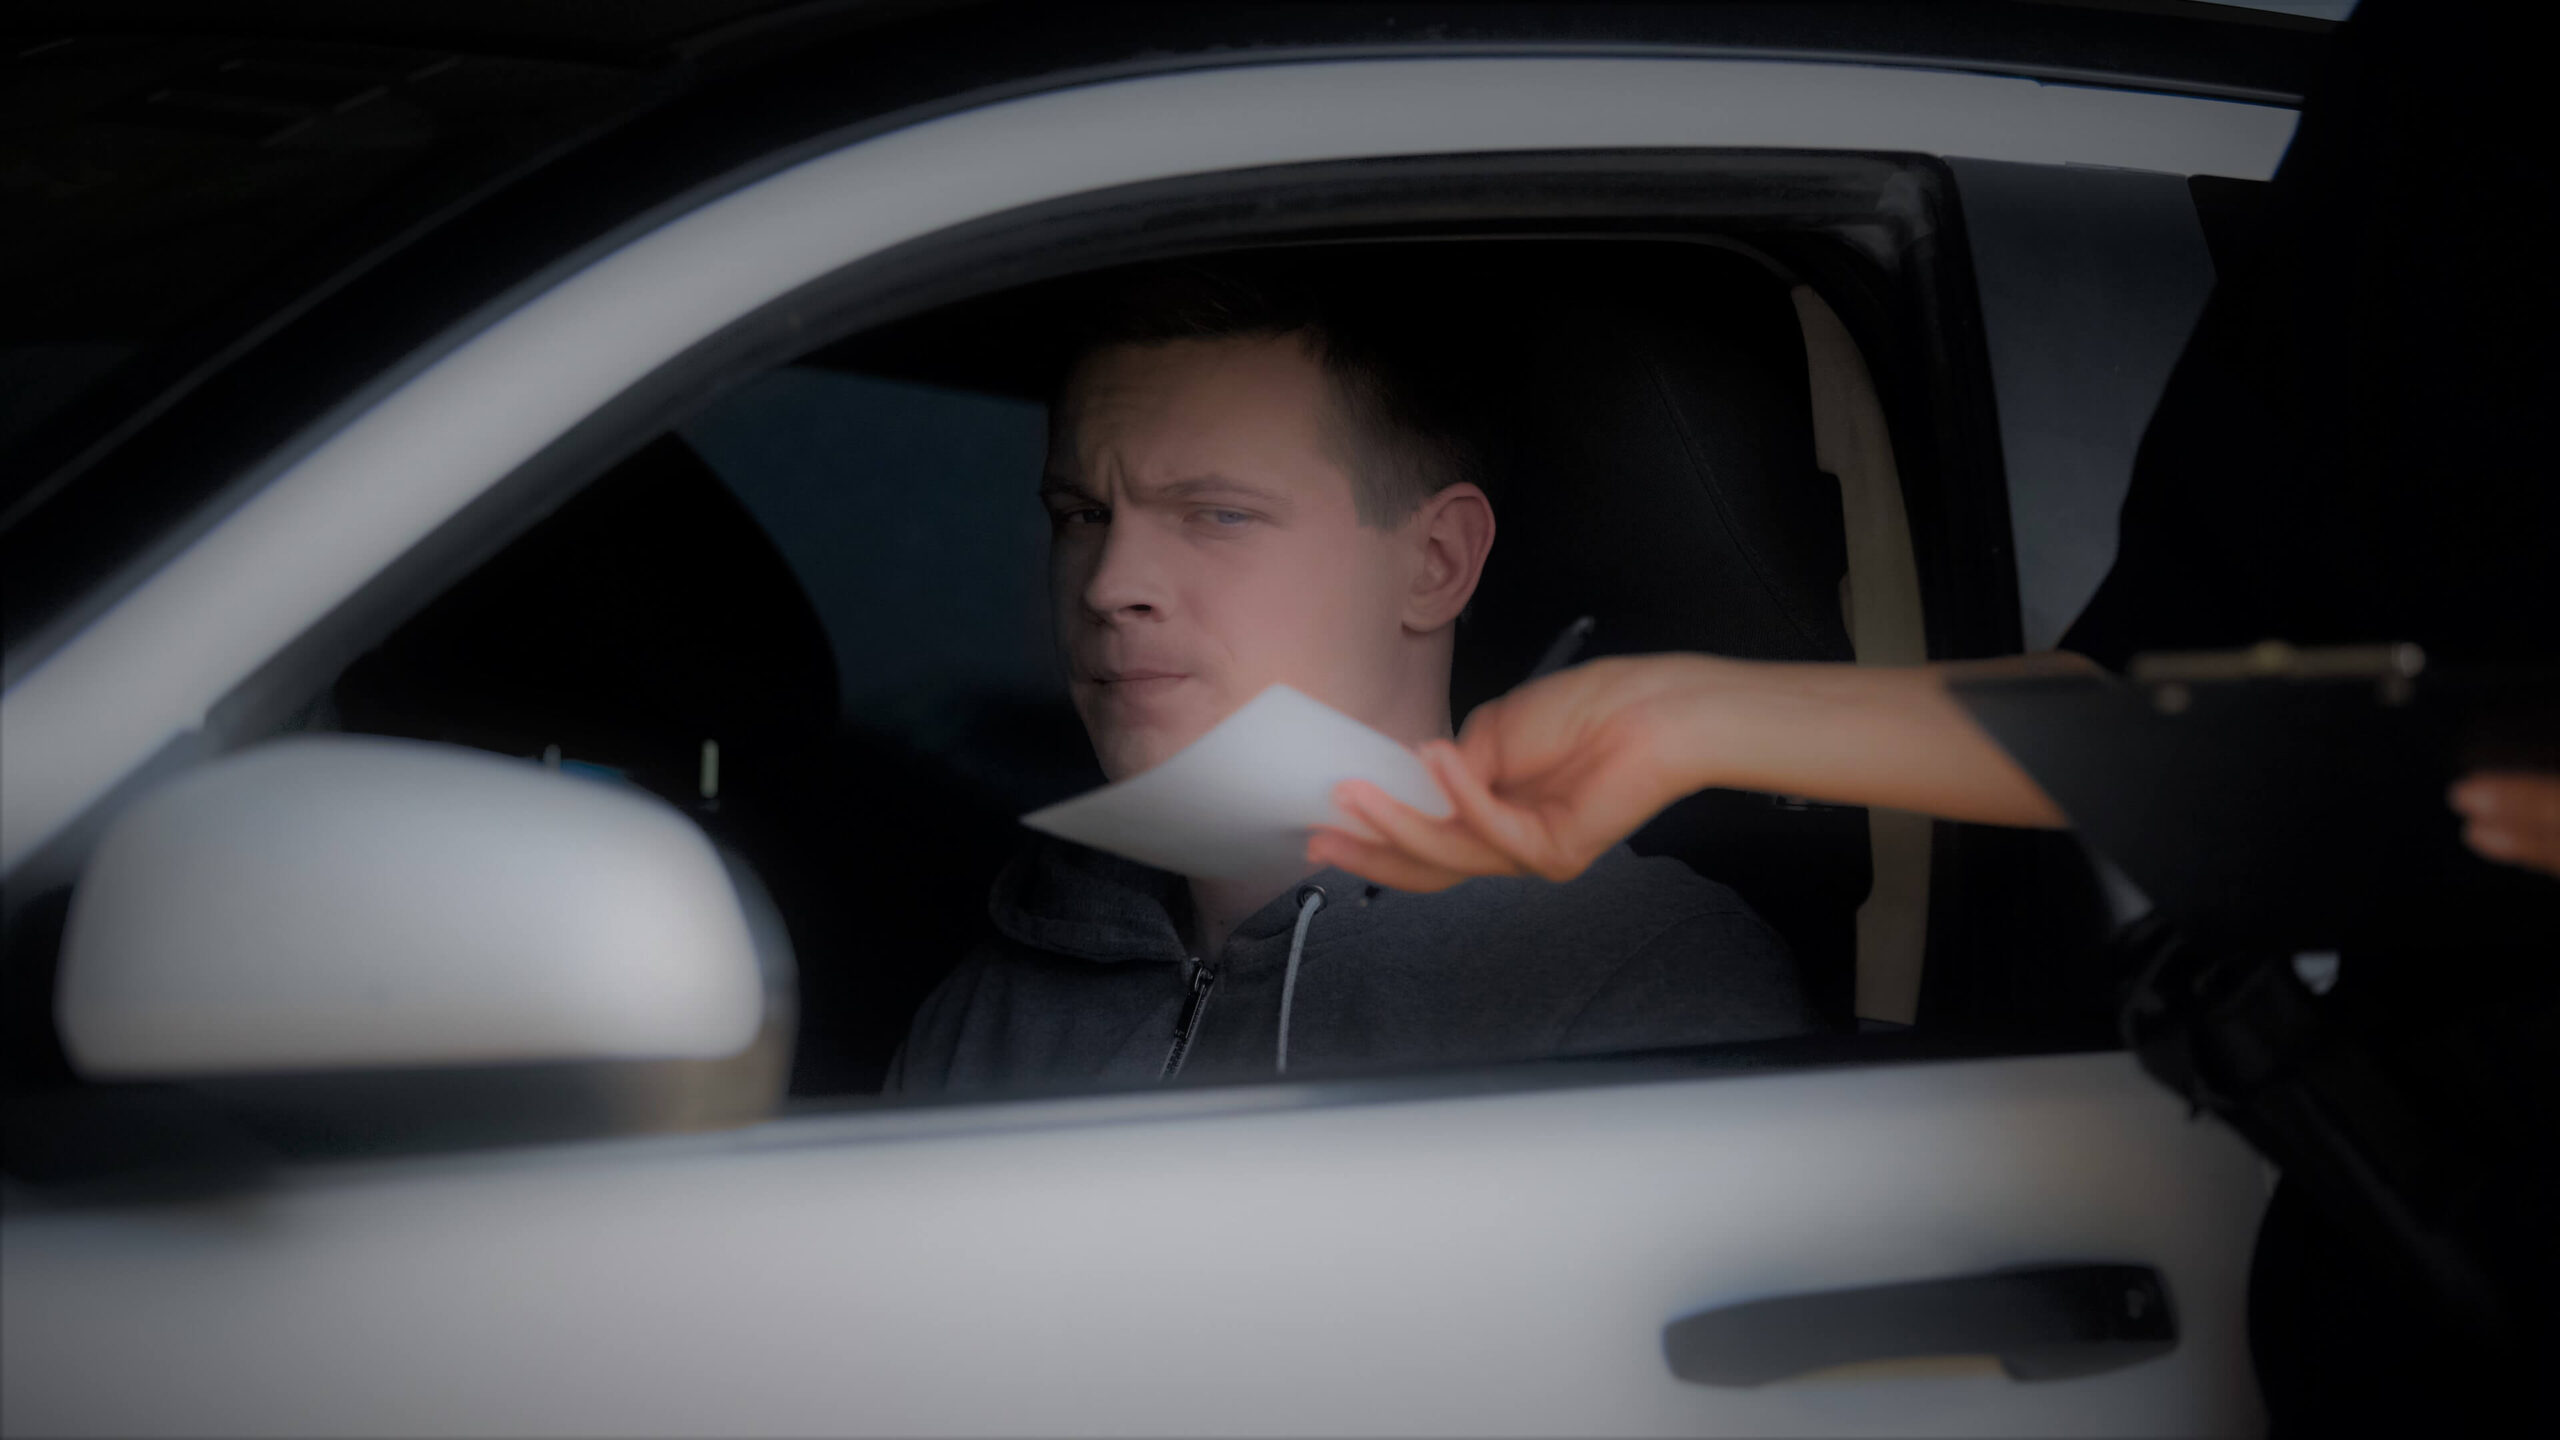 Driving while suspended